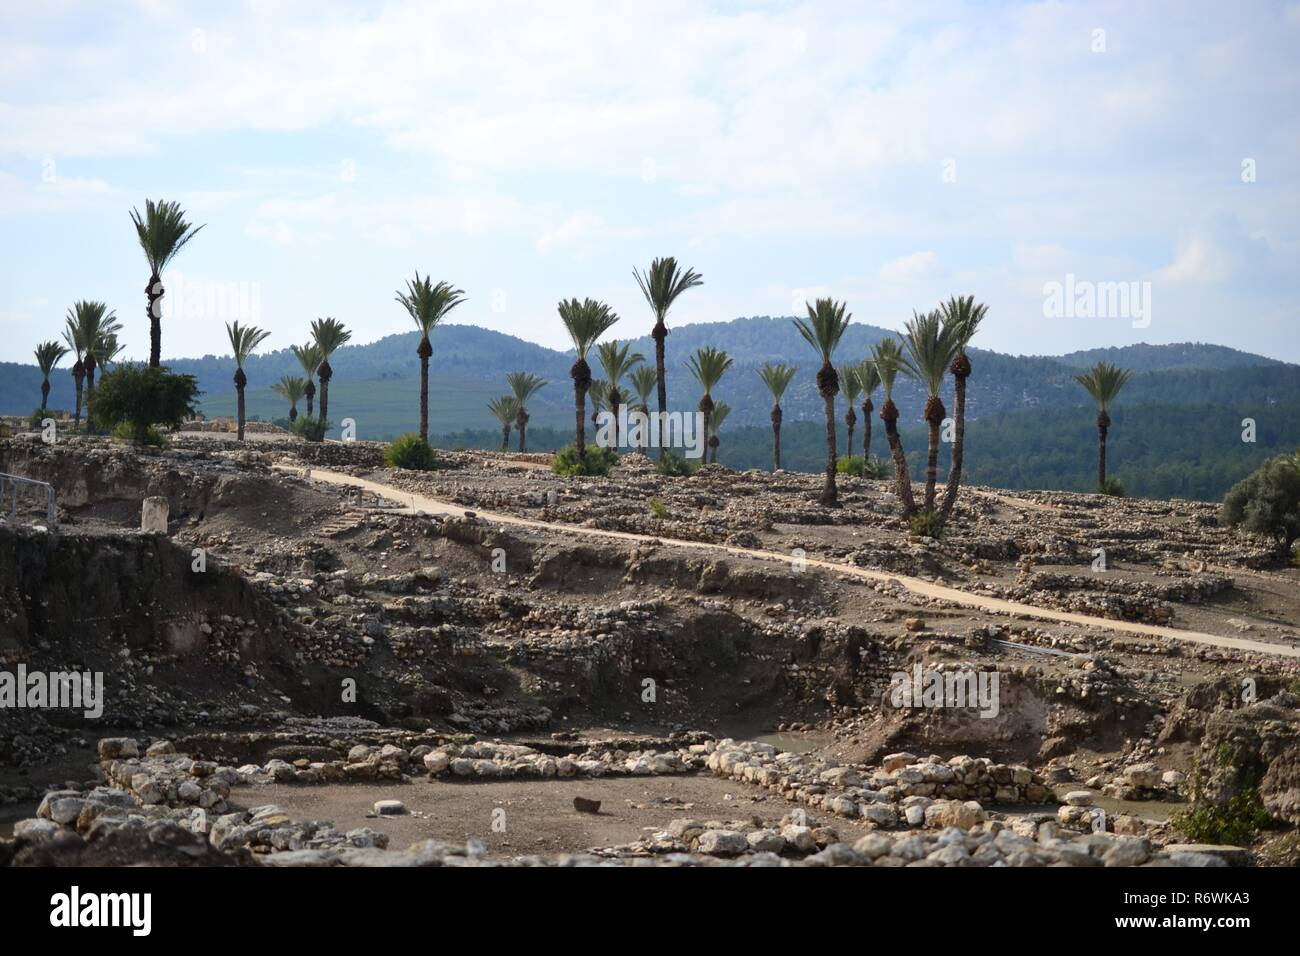 Palm trees in antique Megiddo Armageddon Archaeological site, Jezreel Valley, Lower Galilee, Israel - Stock Image